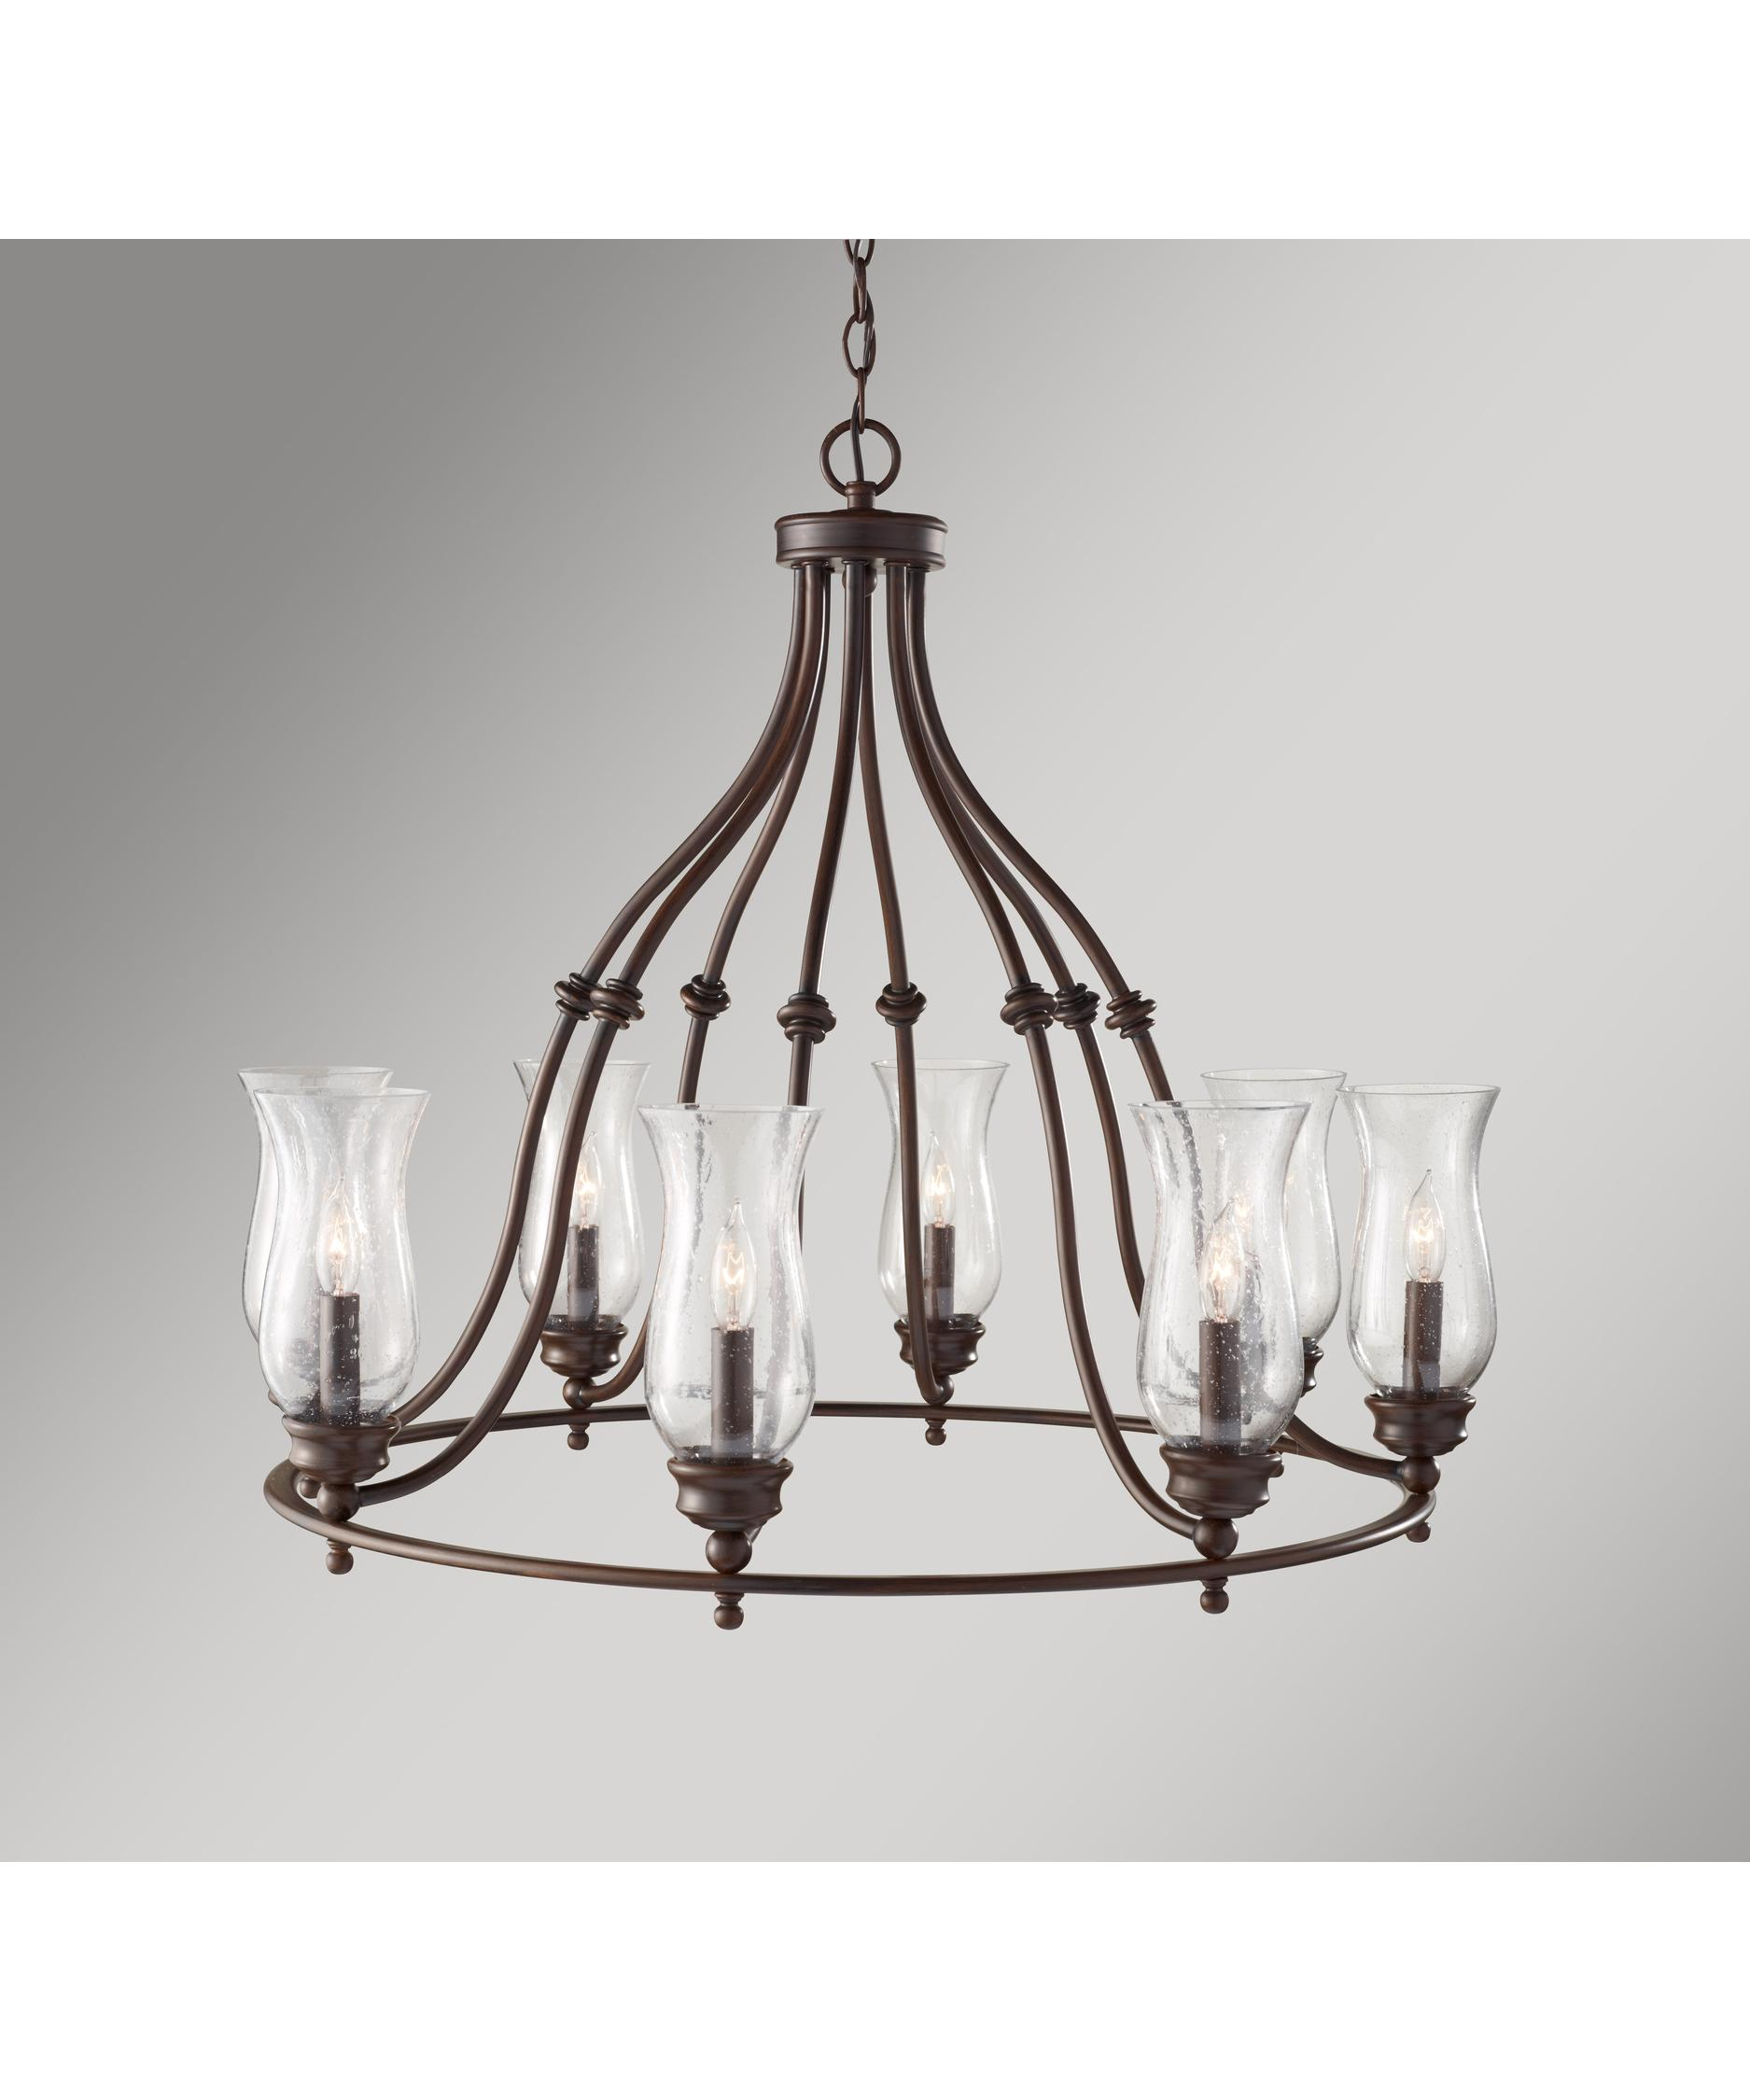 Murray Feiss Pickering Lane 32 Inch Wide 8 Light Chandelier – Murray Feiss Chandeliers